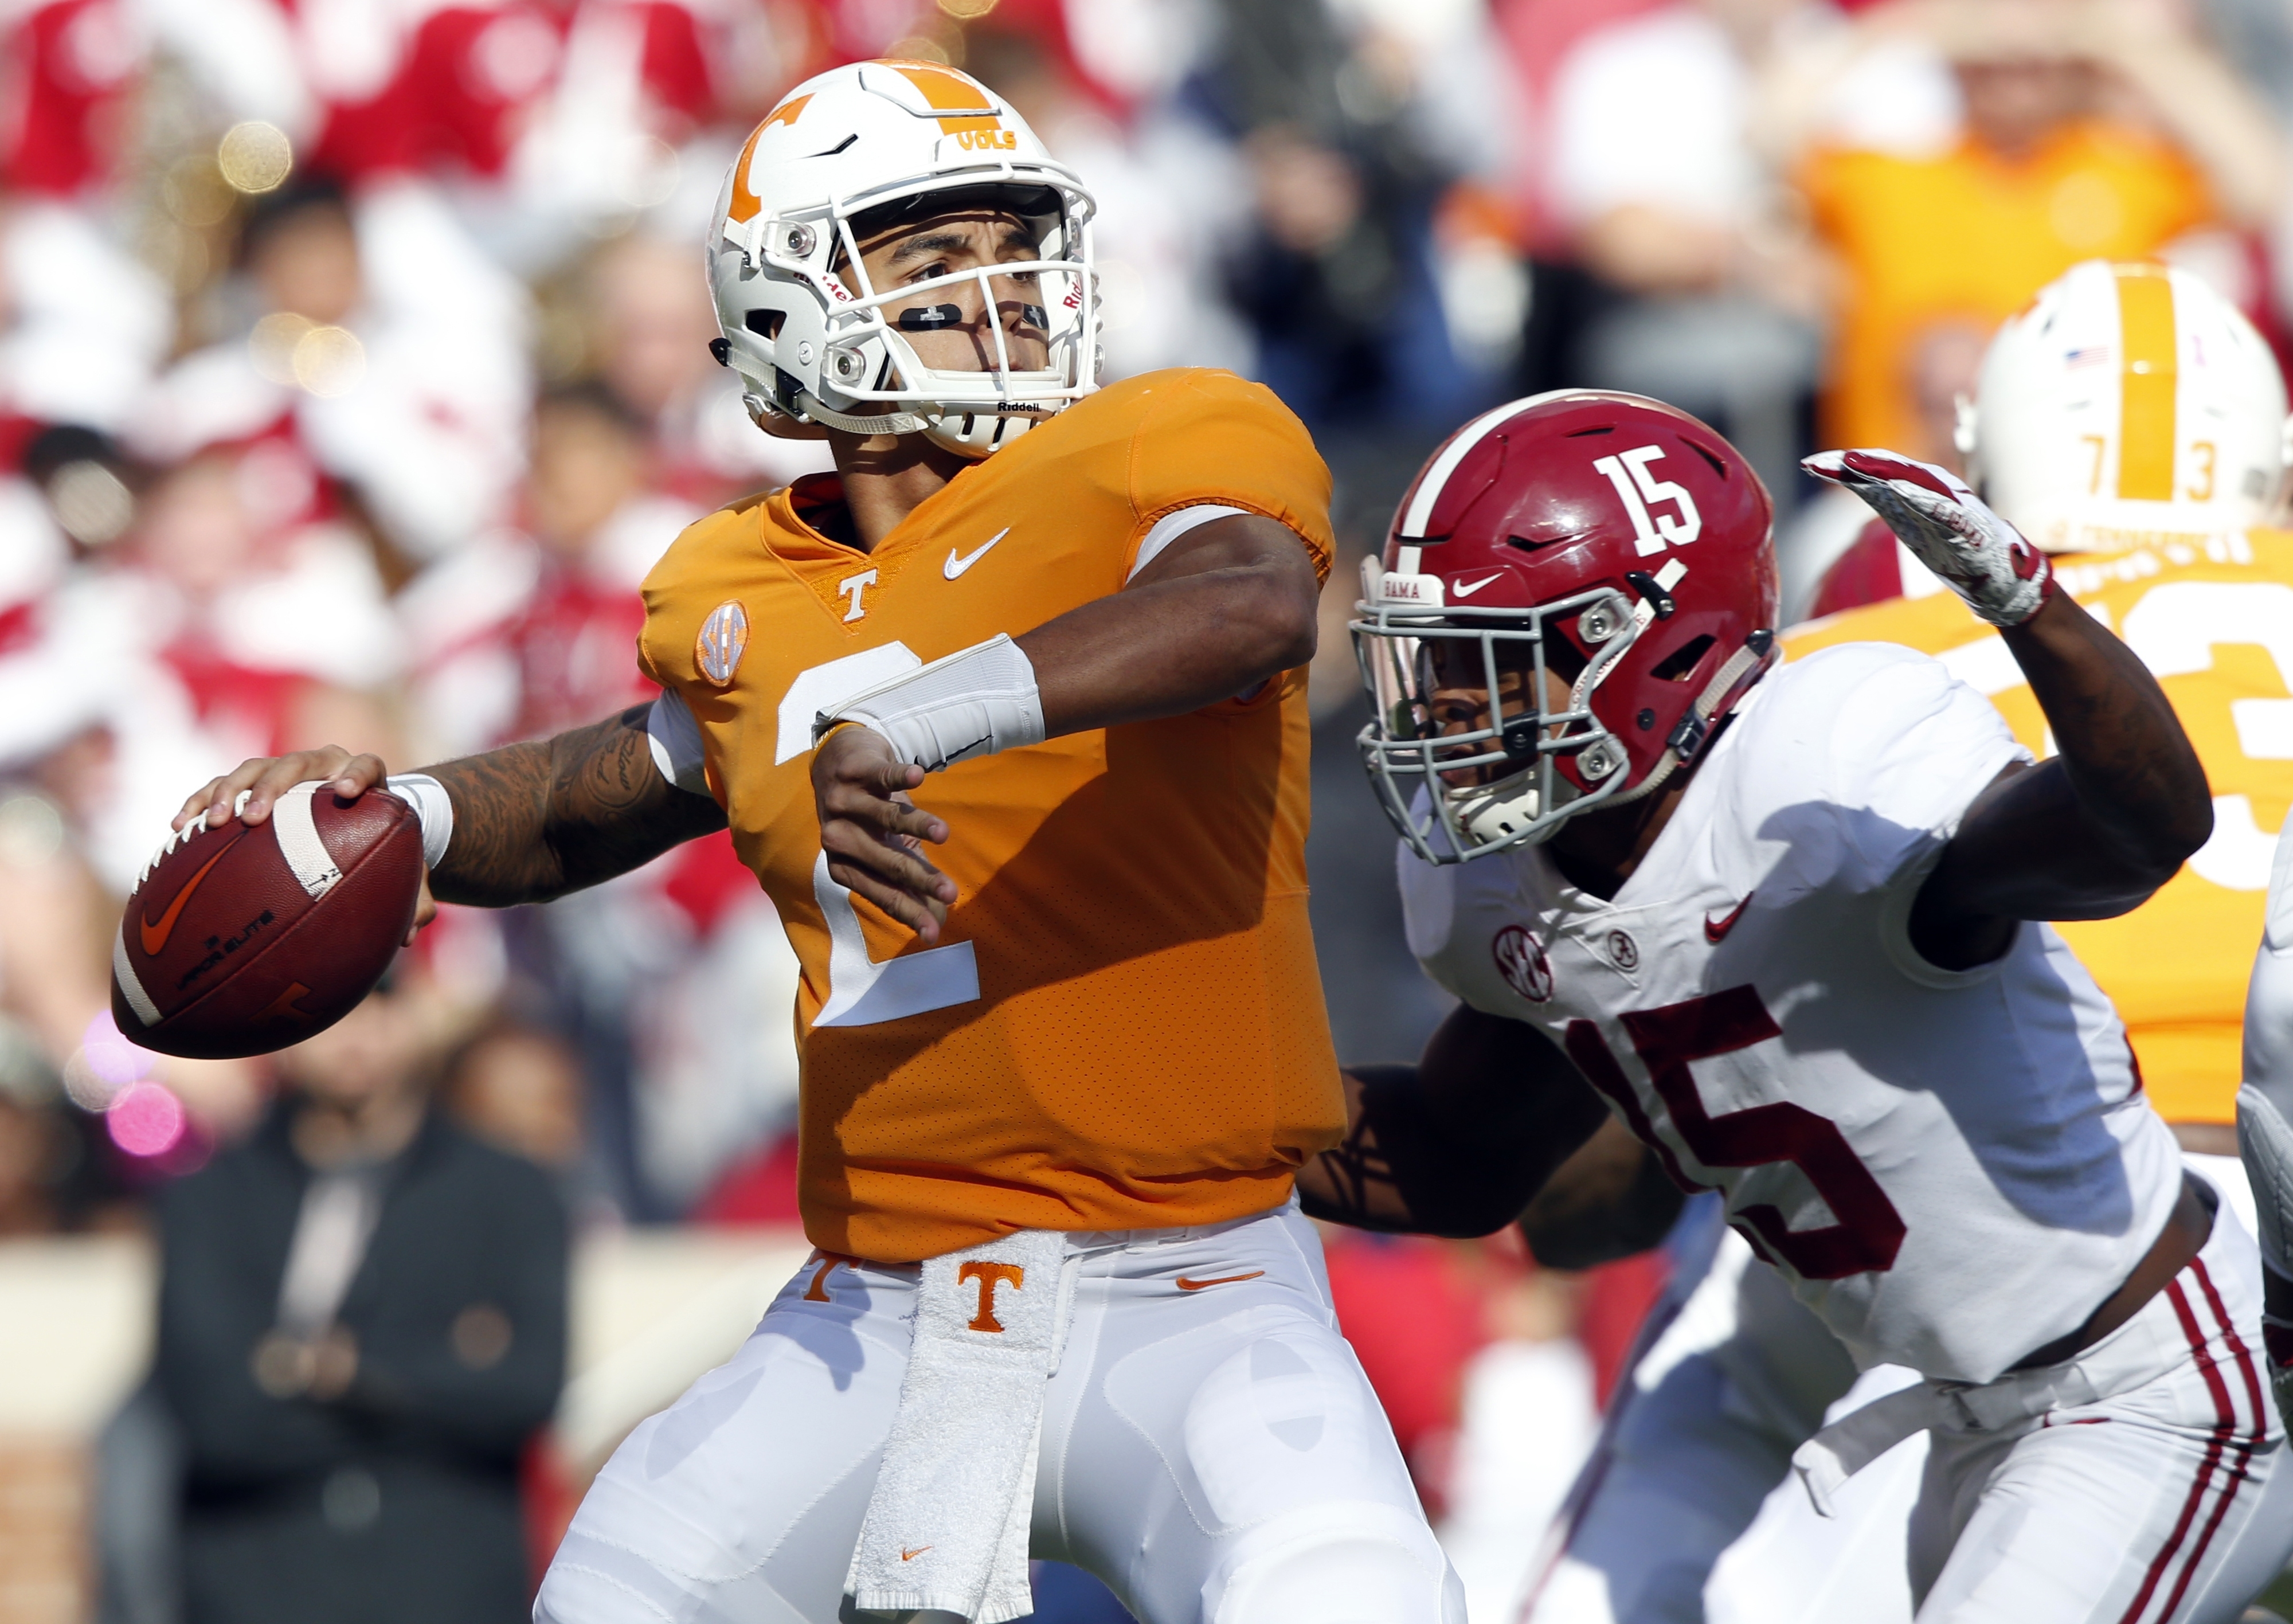 Tennessee quarterback Jarrett Guarantano (2) attempts to throw to a receiver as he is pressured by Alabama defensive back Xavier McKinney (15) in the first half against Alabama Saturday in Knoxville, Tenn.